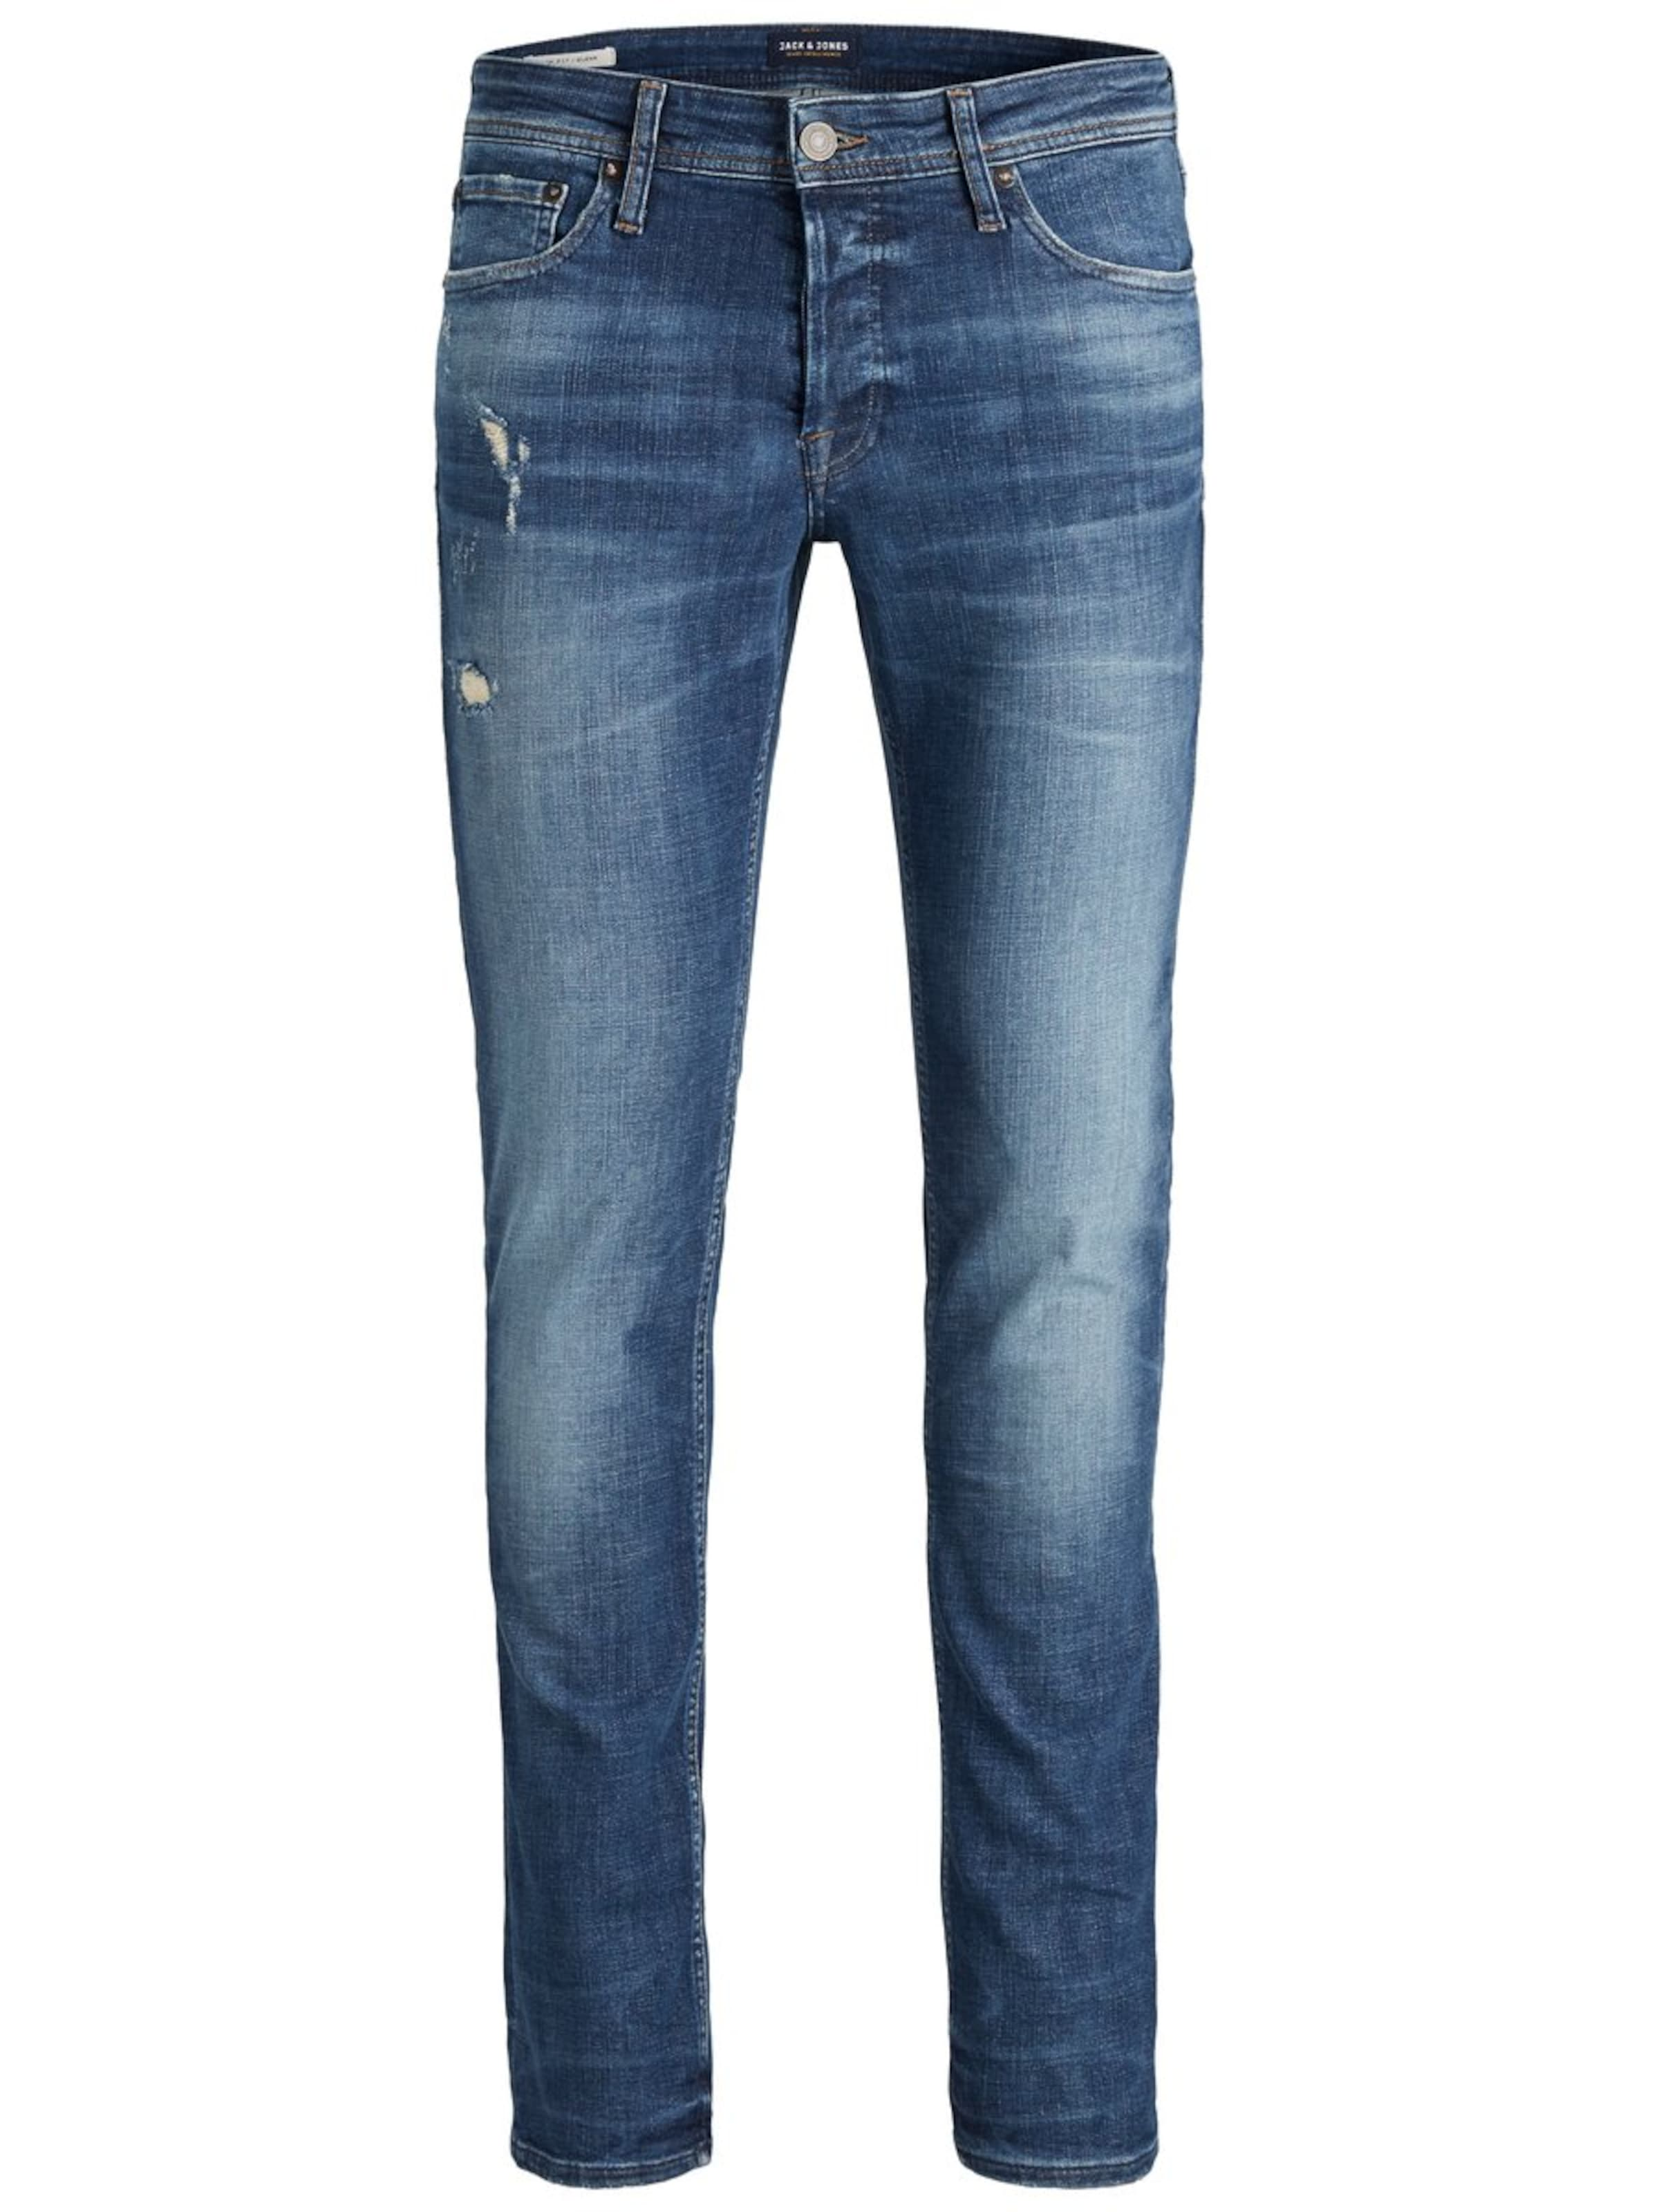 Bleu 312' En Jos Jones Original Jackamp; Jean 'glenn Denim srthdCxQB